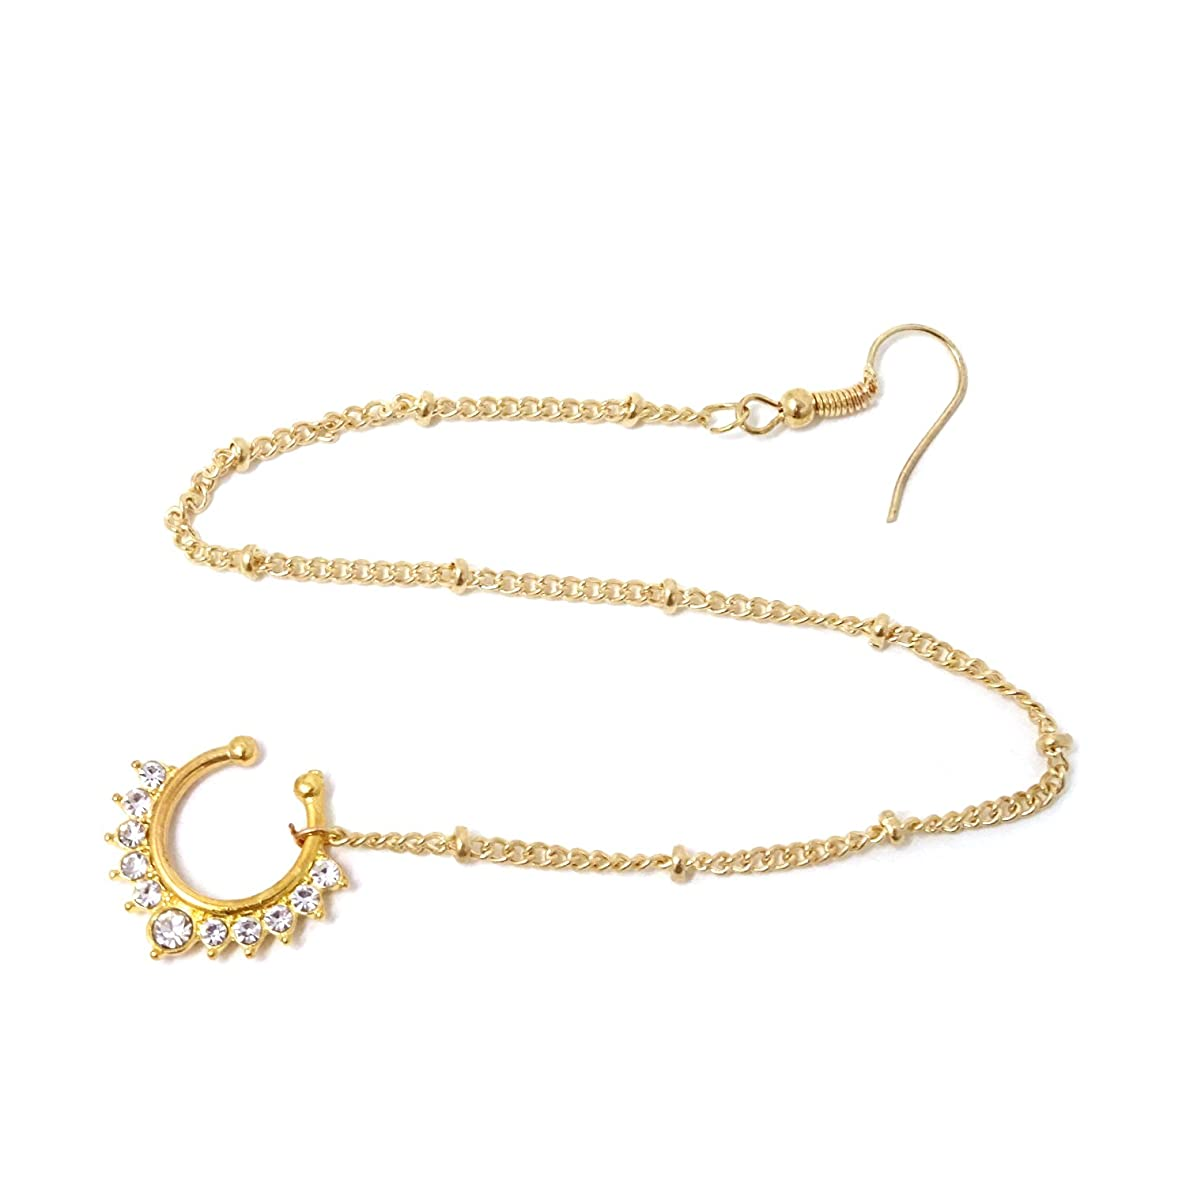 Honbay Gold Fake Septum Ring Non Piercing Indian Nose Rings with Chain Nose to Ear Chain